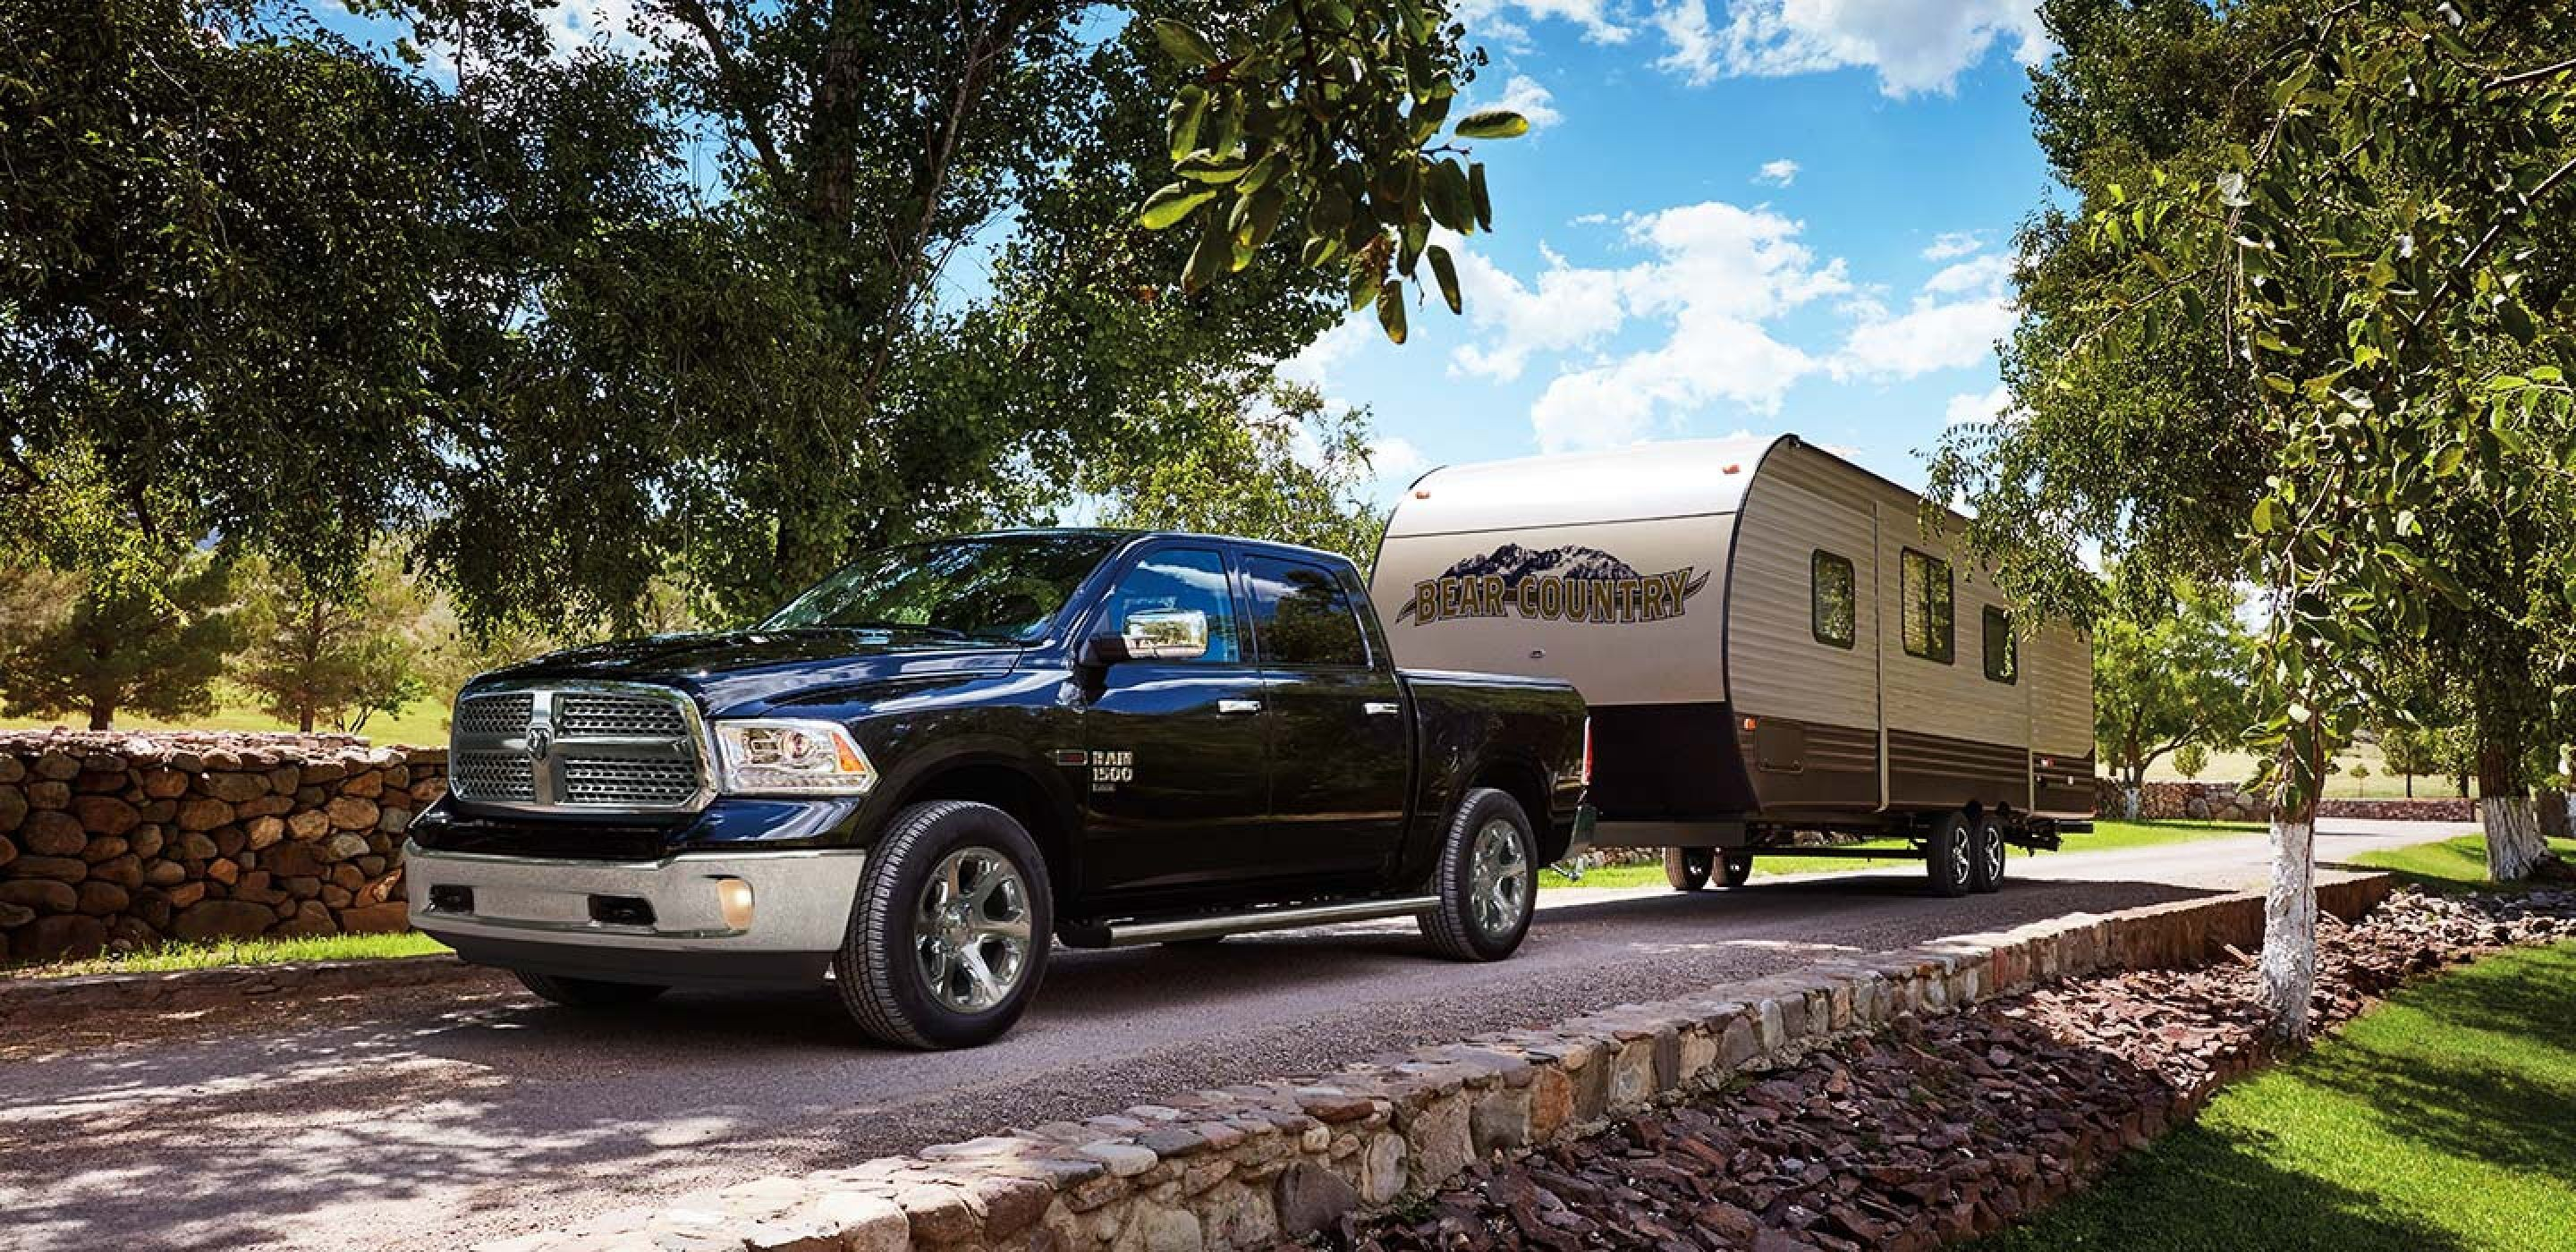 Landmark Dodge Chrysler Jeep RAM Blog - Landmark Dodge